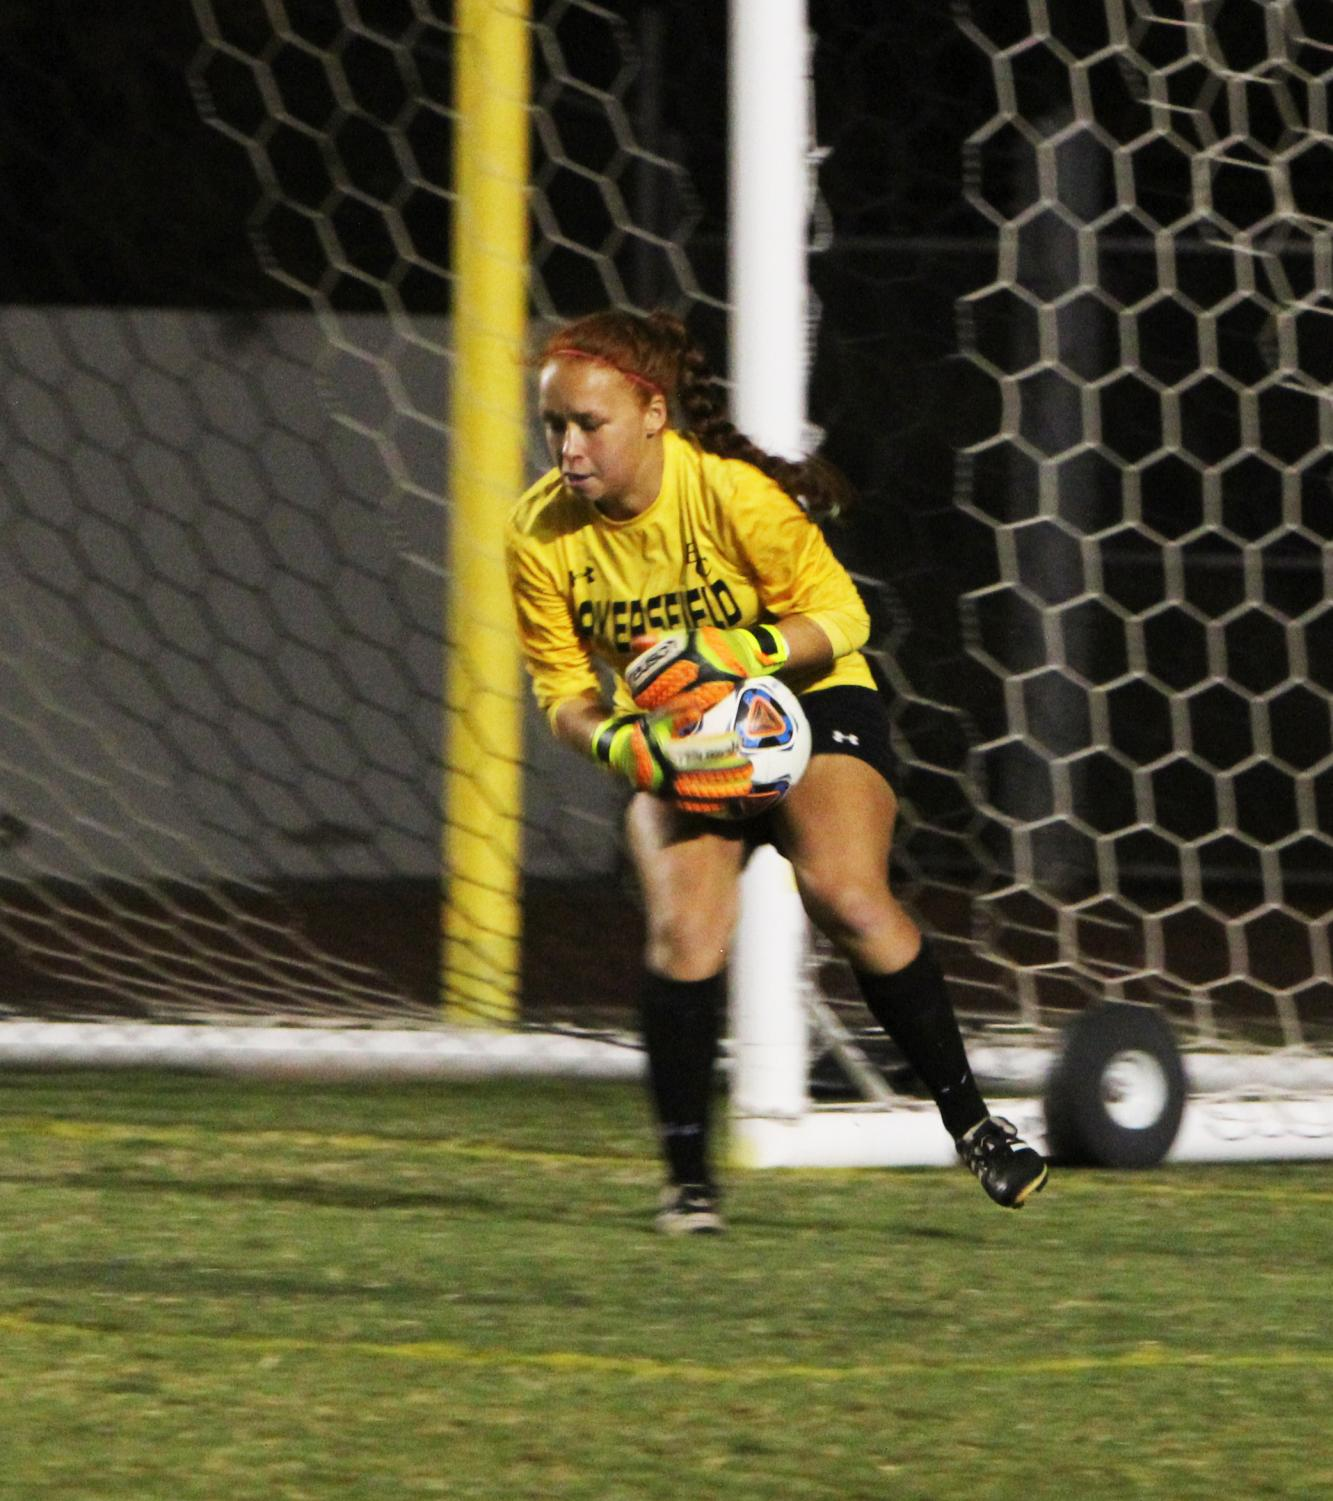 Goalie Taylor Serrano makes a save from an attempted goal.